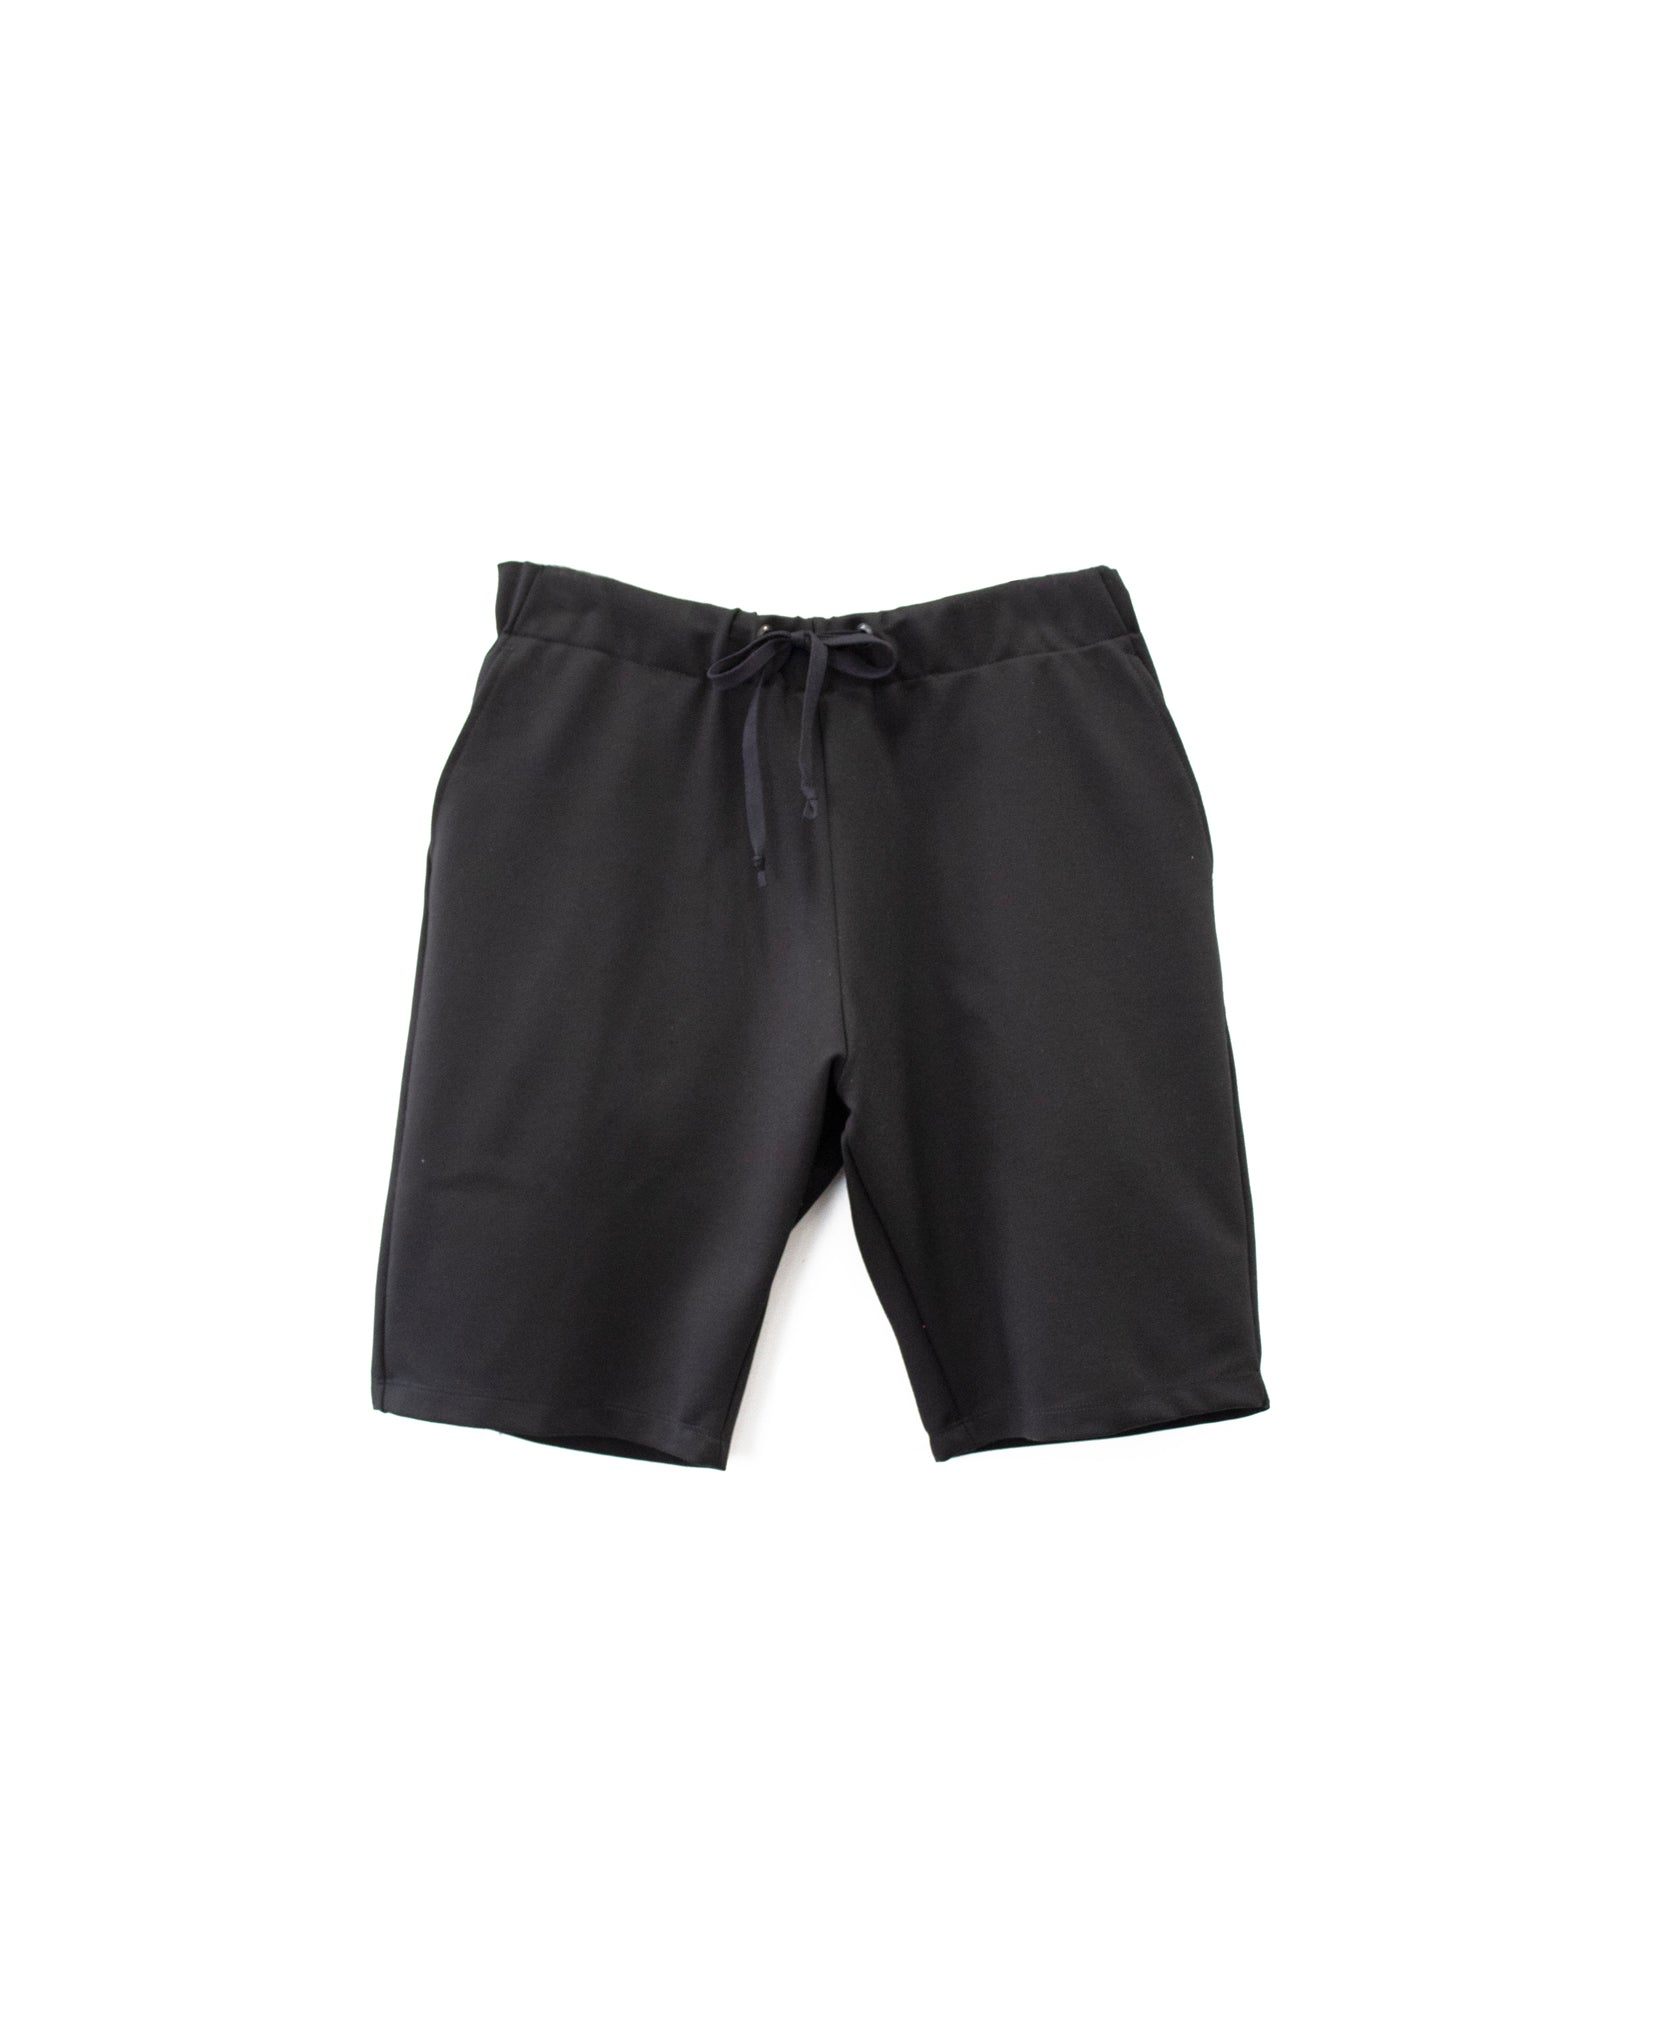 Solid Black Ponte Shorts